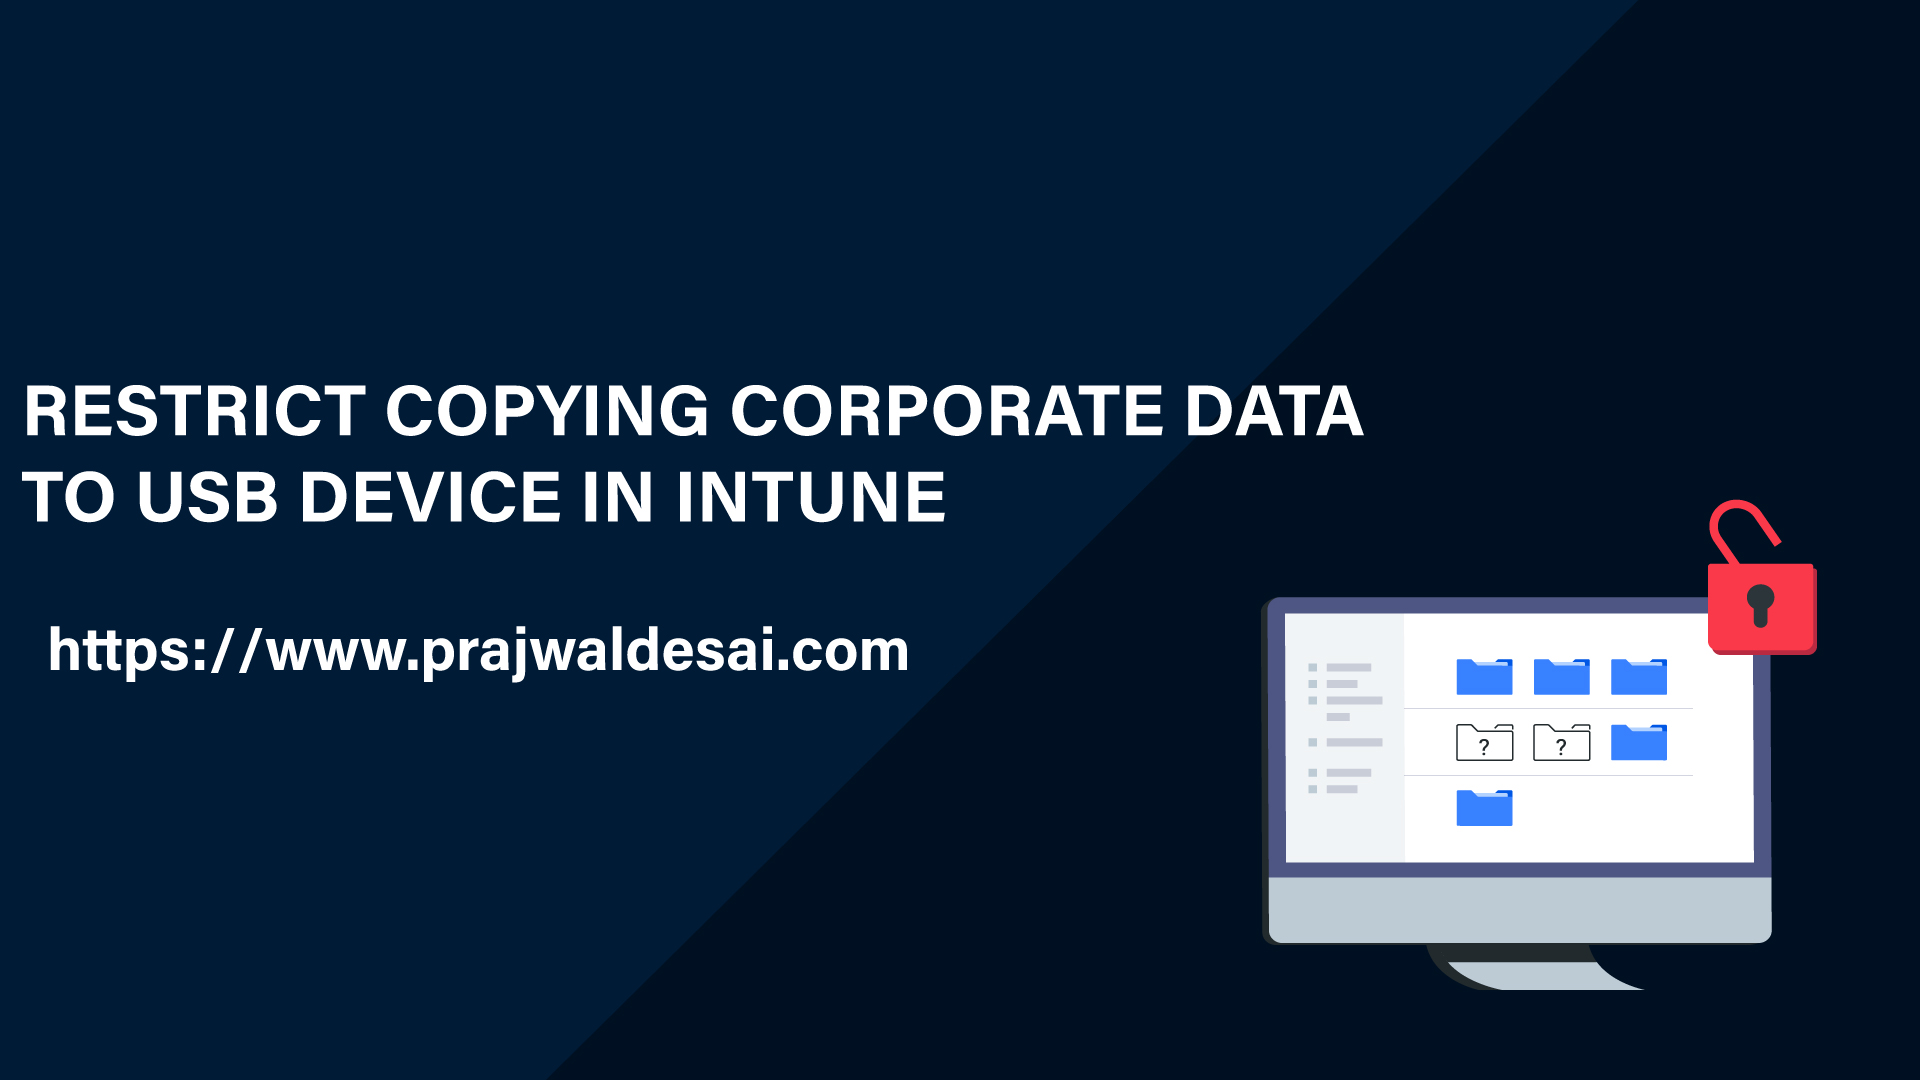 Microsoft Intune - Restrict Copying Corporate Data to USB Device